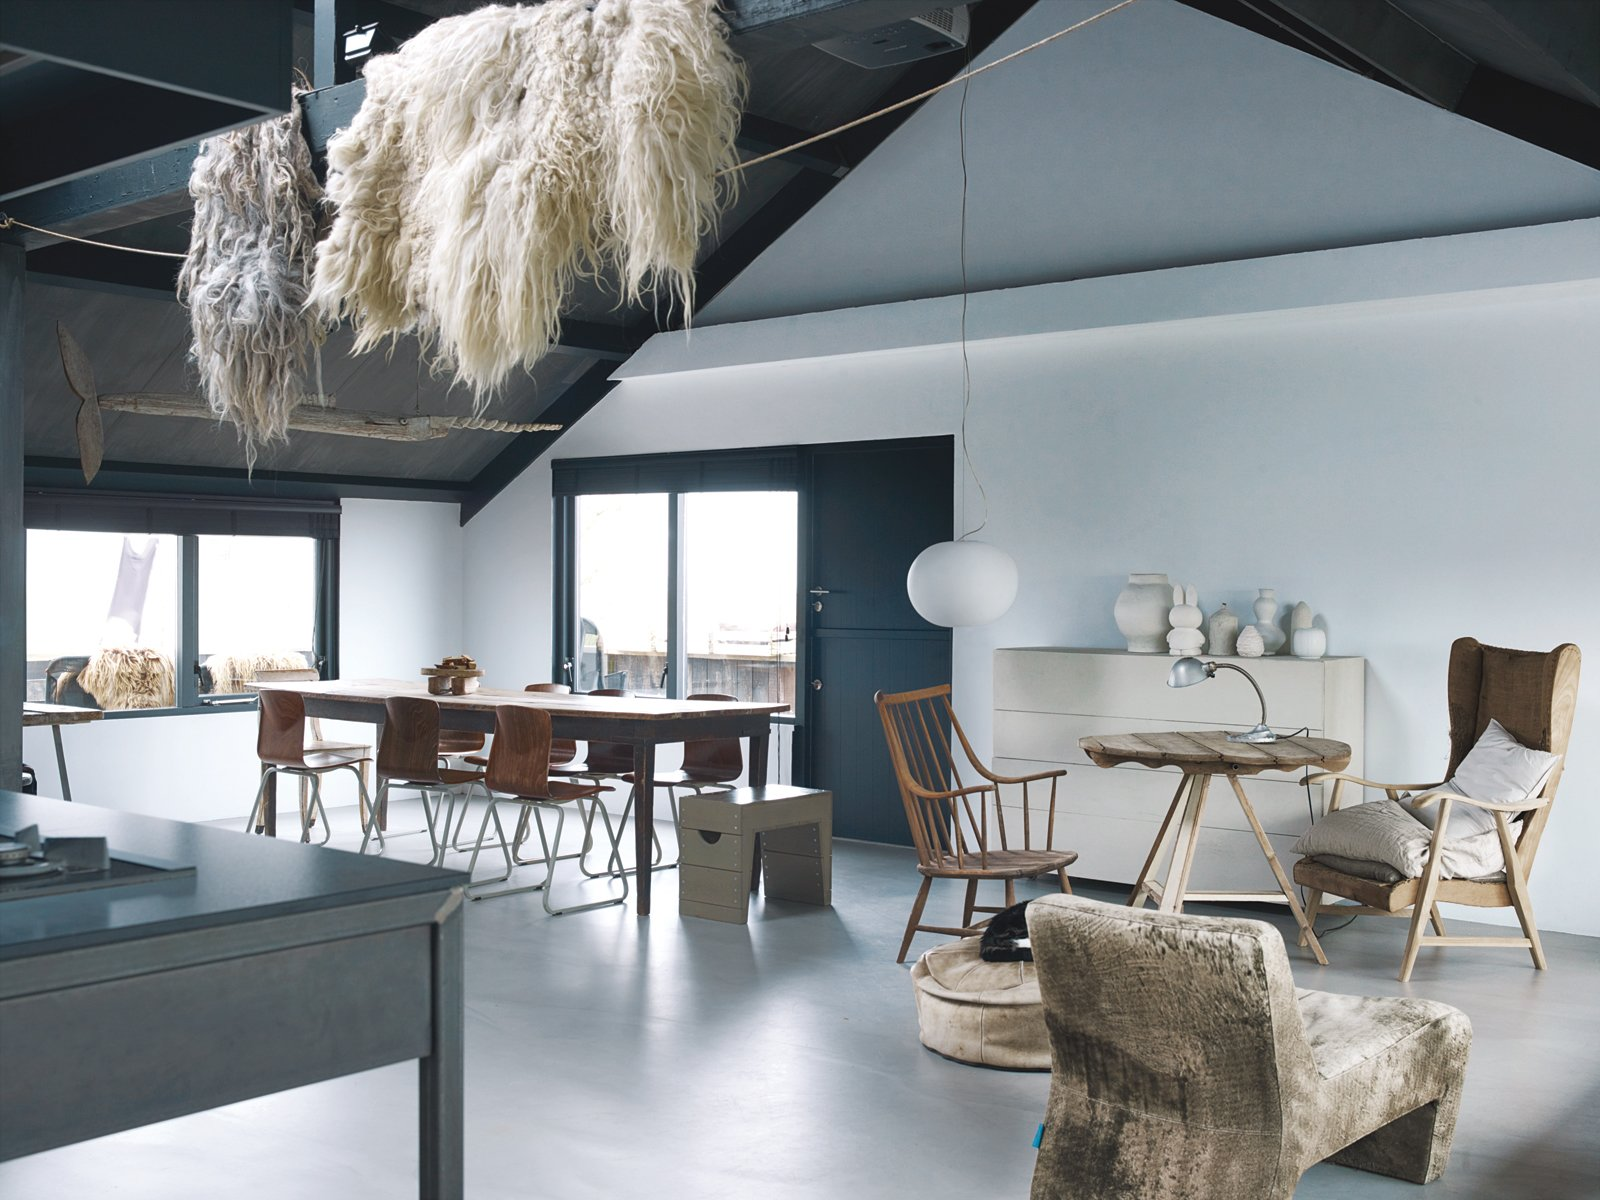 Leen and Middendorp's living space is peppered with an assortment of objects and textures, including sheep's wool, an antique French farmhouse table, salvaged chairs, a Glo-Ball light by Jasper Morrison for Flos, and an Axel leather sofa by Gijs Papavoine for Montis.  Photo 2 of 15 in Rural Home on a Holland Harbor